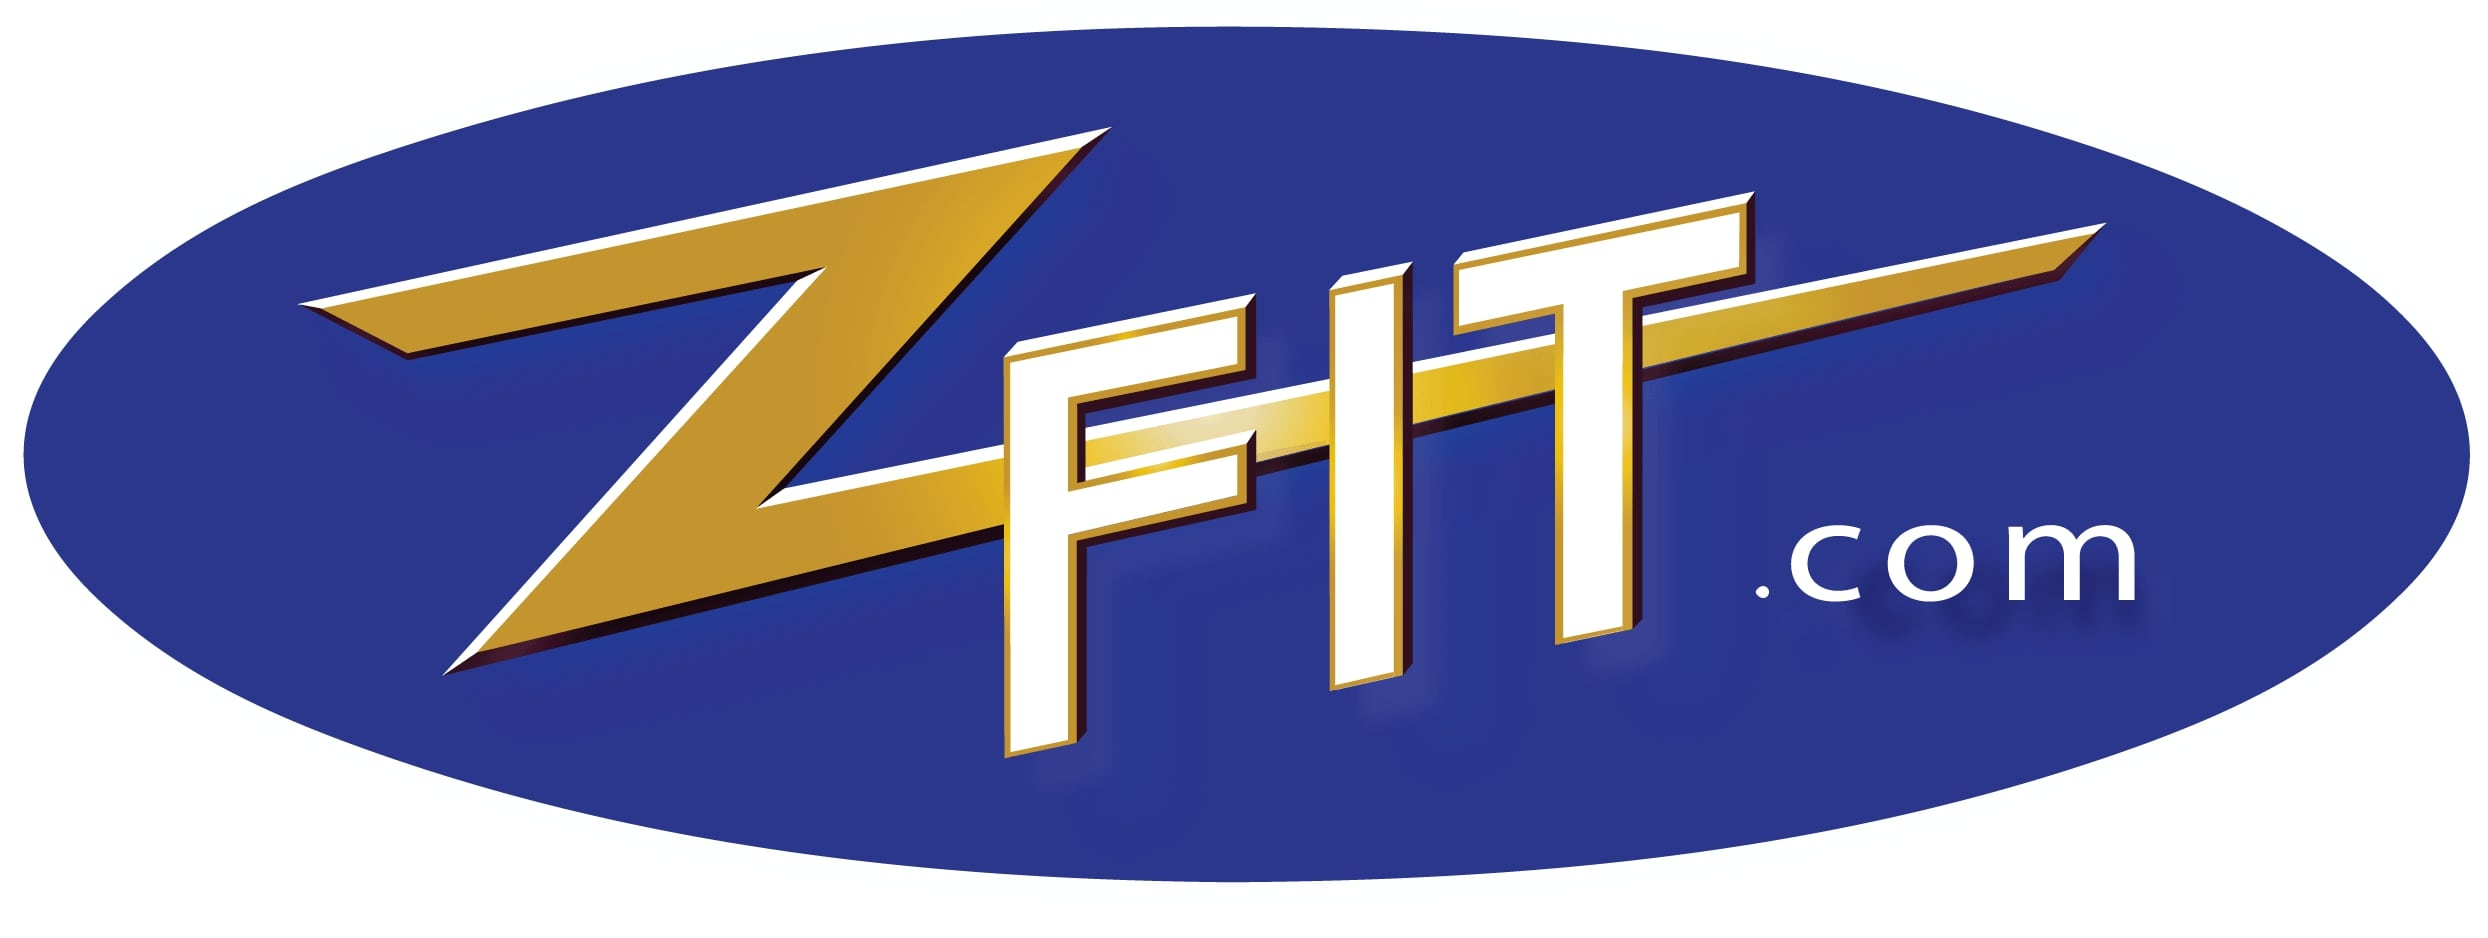 ZFIT_LOGO_FEB18_FINAL BLUE_VECTOR-min.jpg